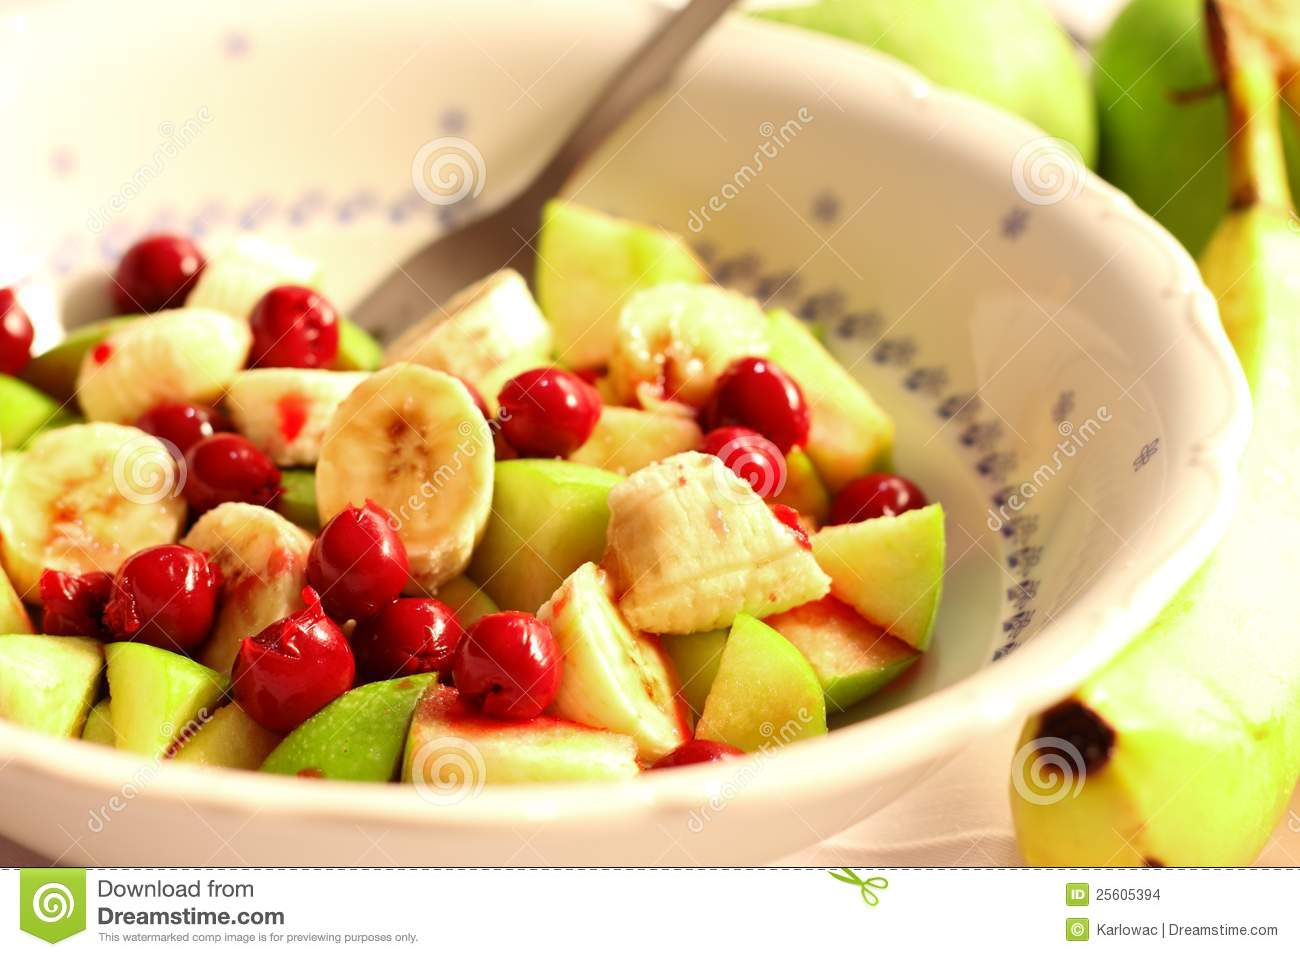 Fruit Salad Stock Images - Image: 25605394